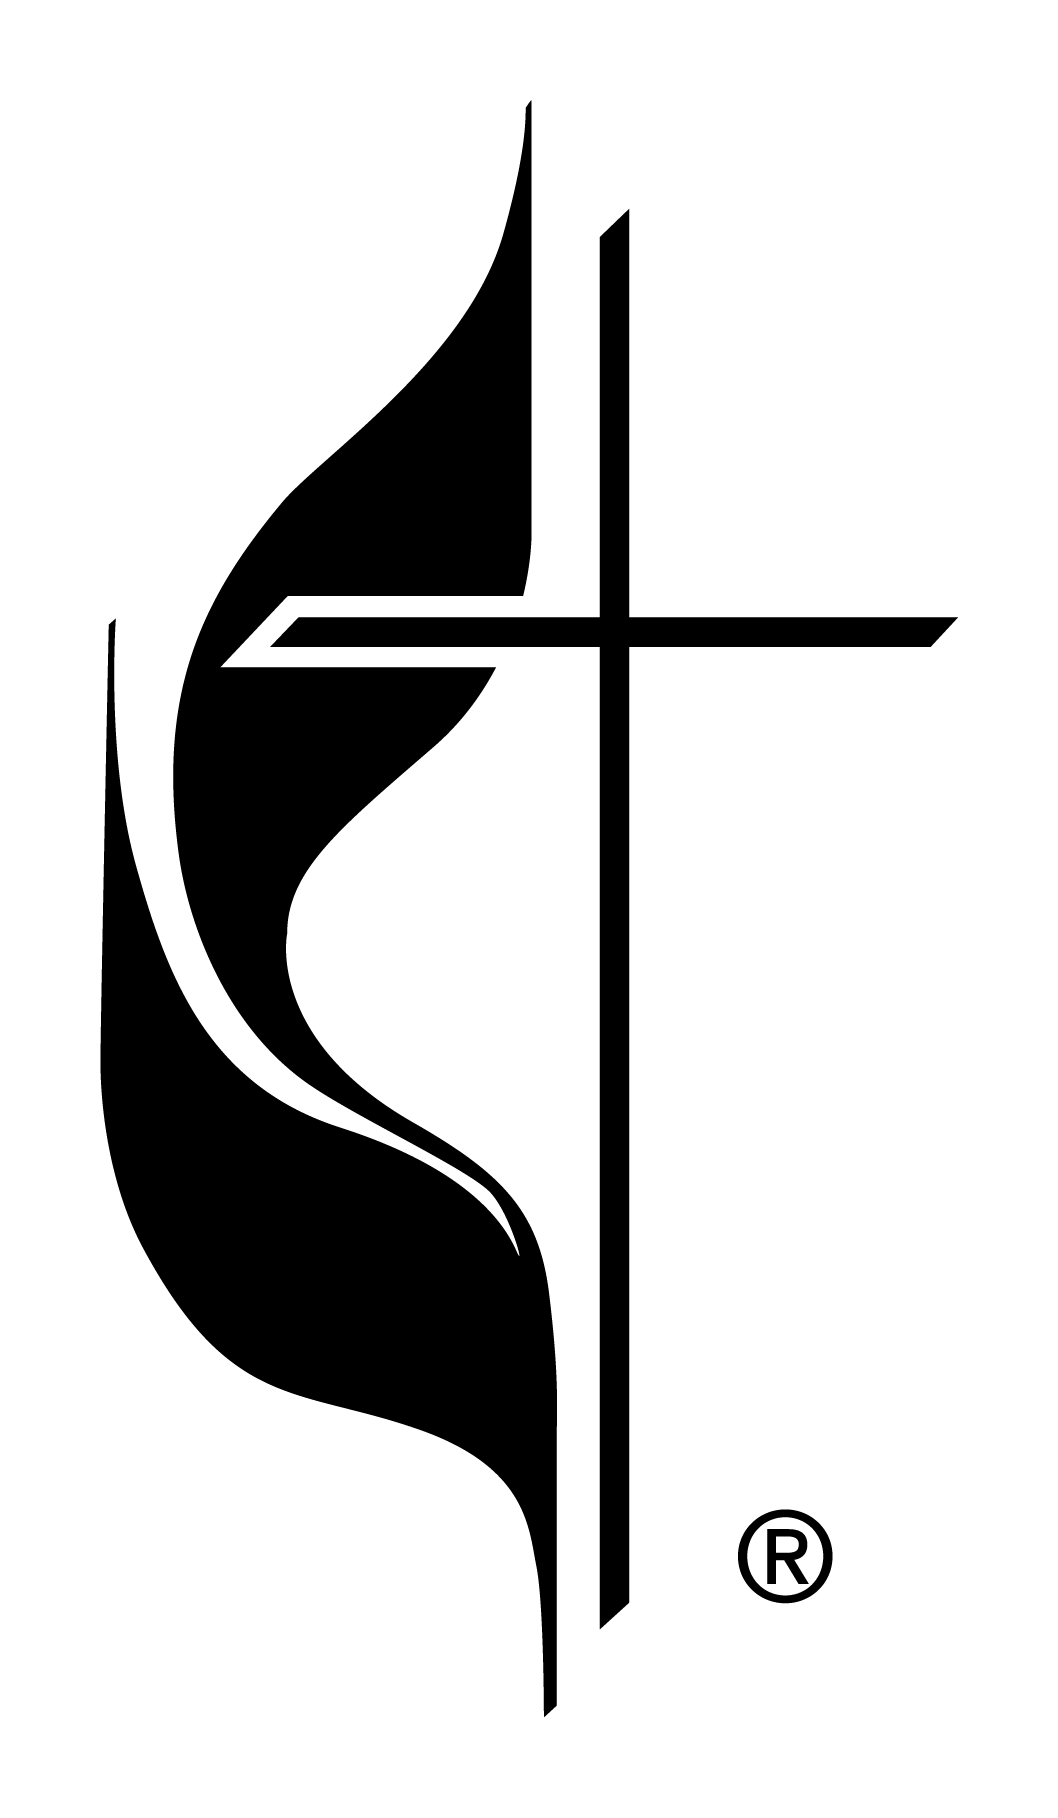 Outline clipart church. Cross logo lines wikiclipart